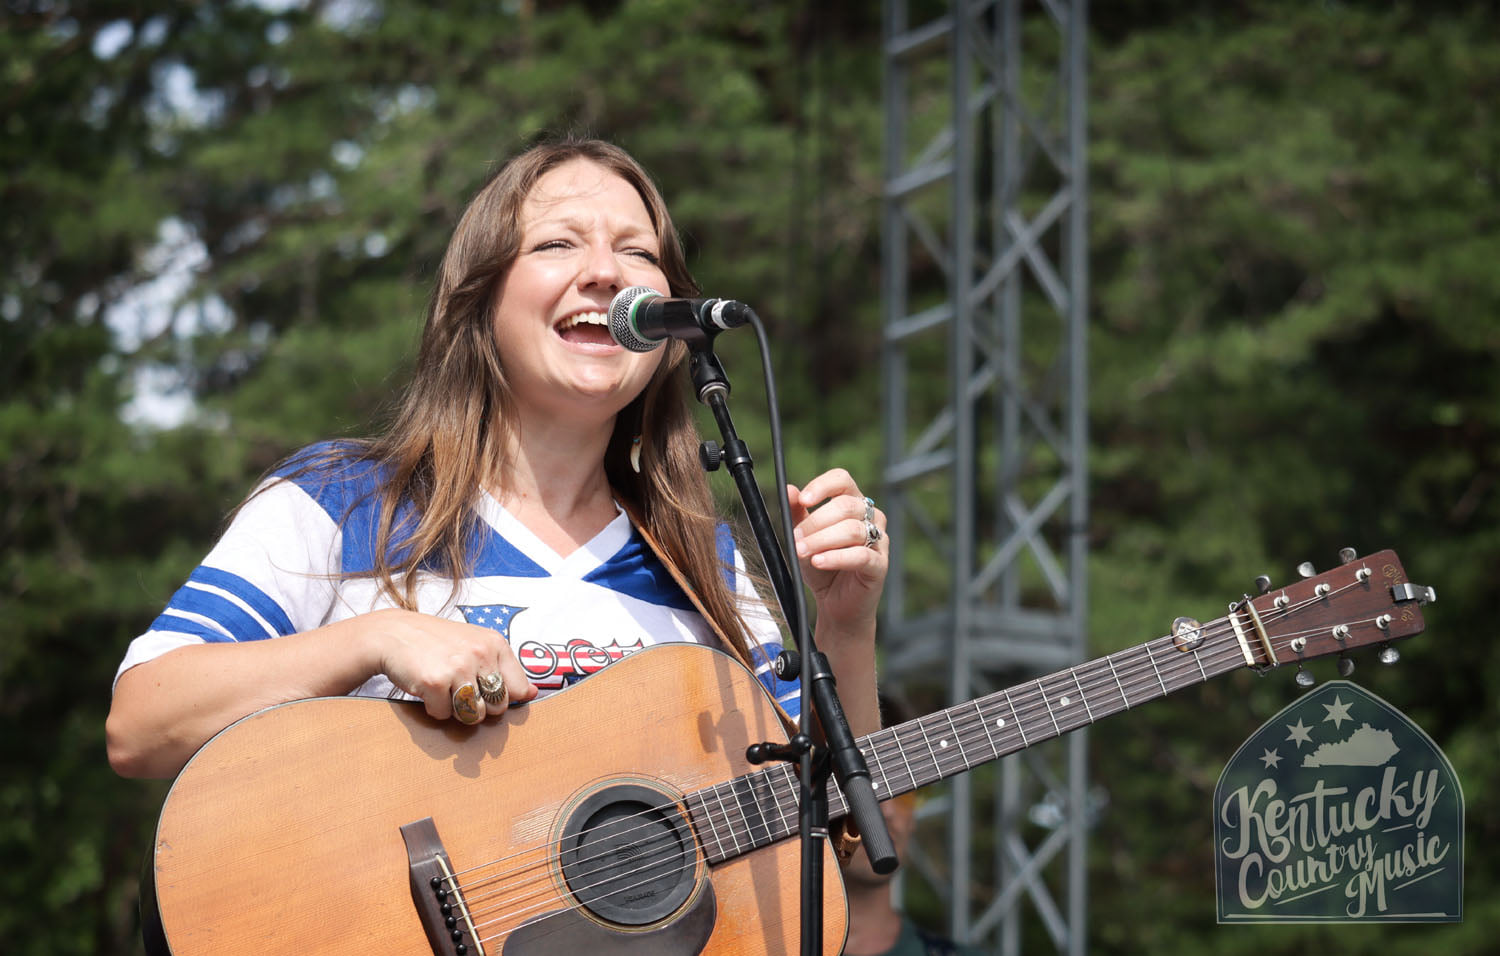 Laurel Cove and Master Musicians set the bar on music festivals